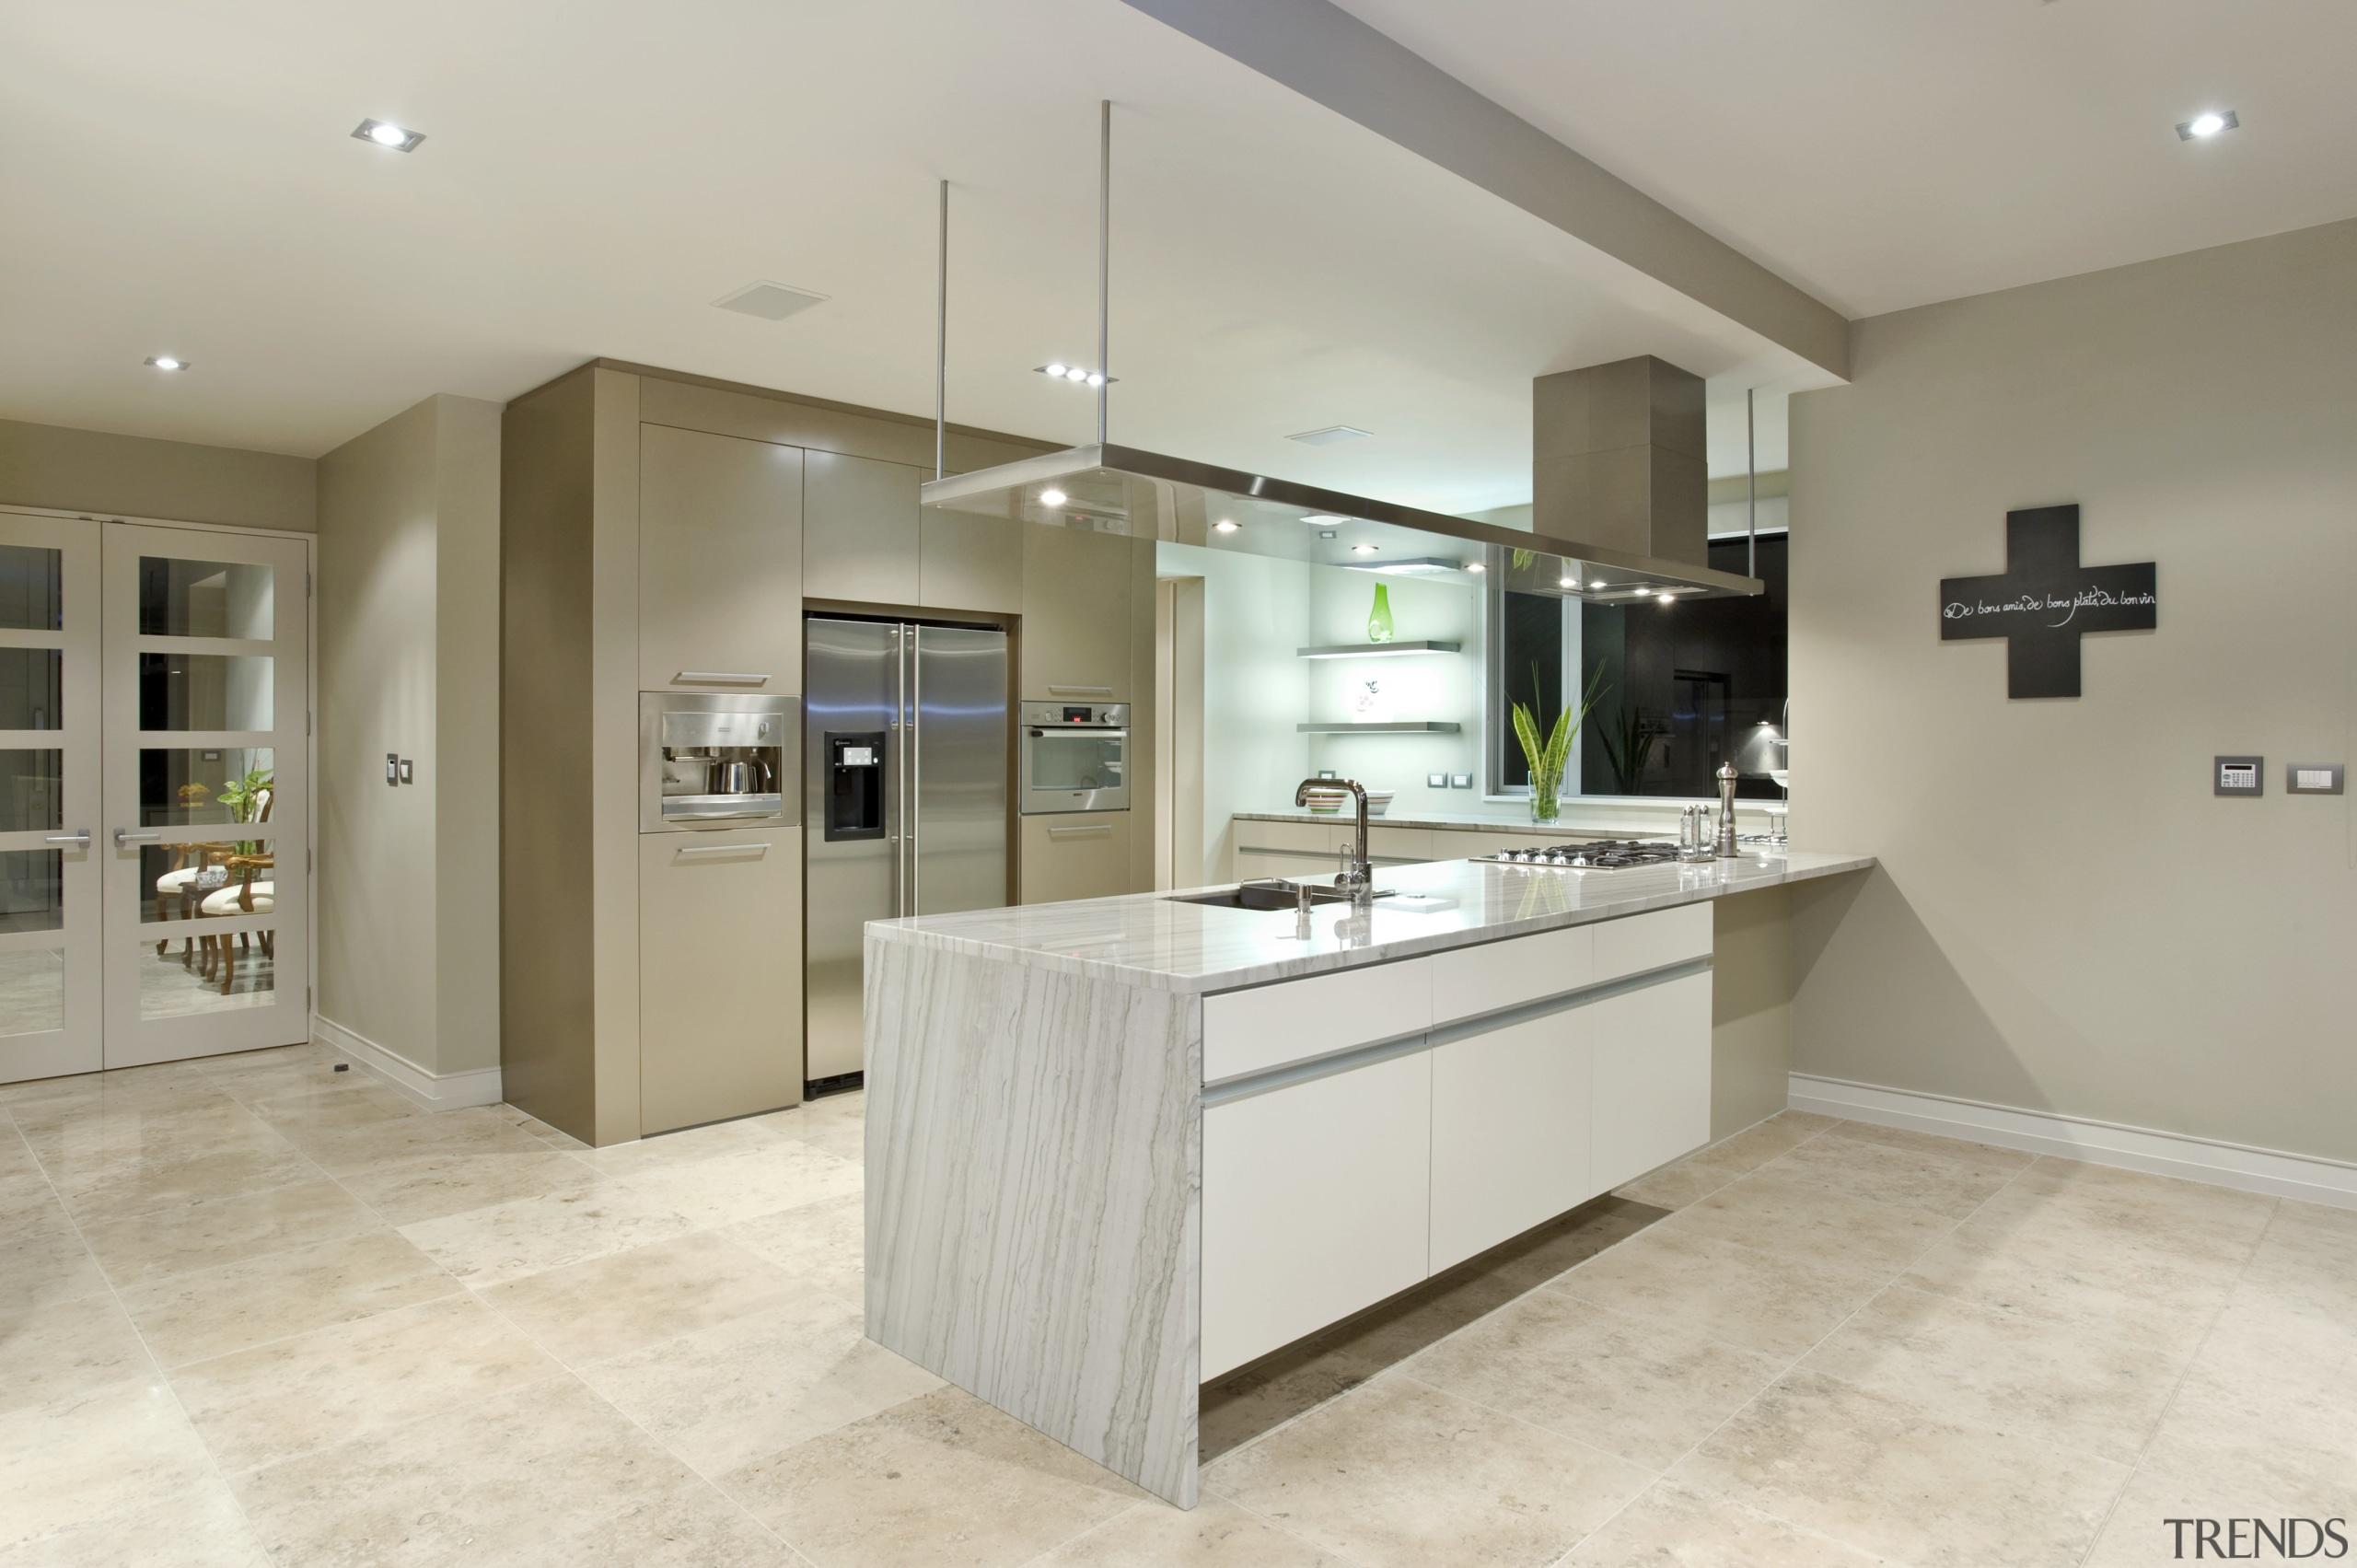 The kitchen, manufactured by Fyfe kitchens, is equipped cabinetry, countertop, floor, flooring, interior design, kitchen, laminate flooring, real estate, room, tile, wood flooring, gray